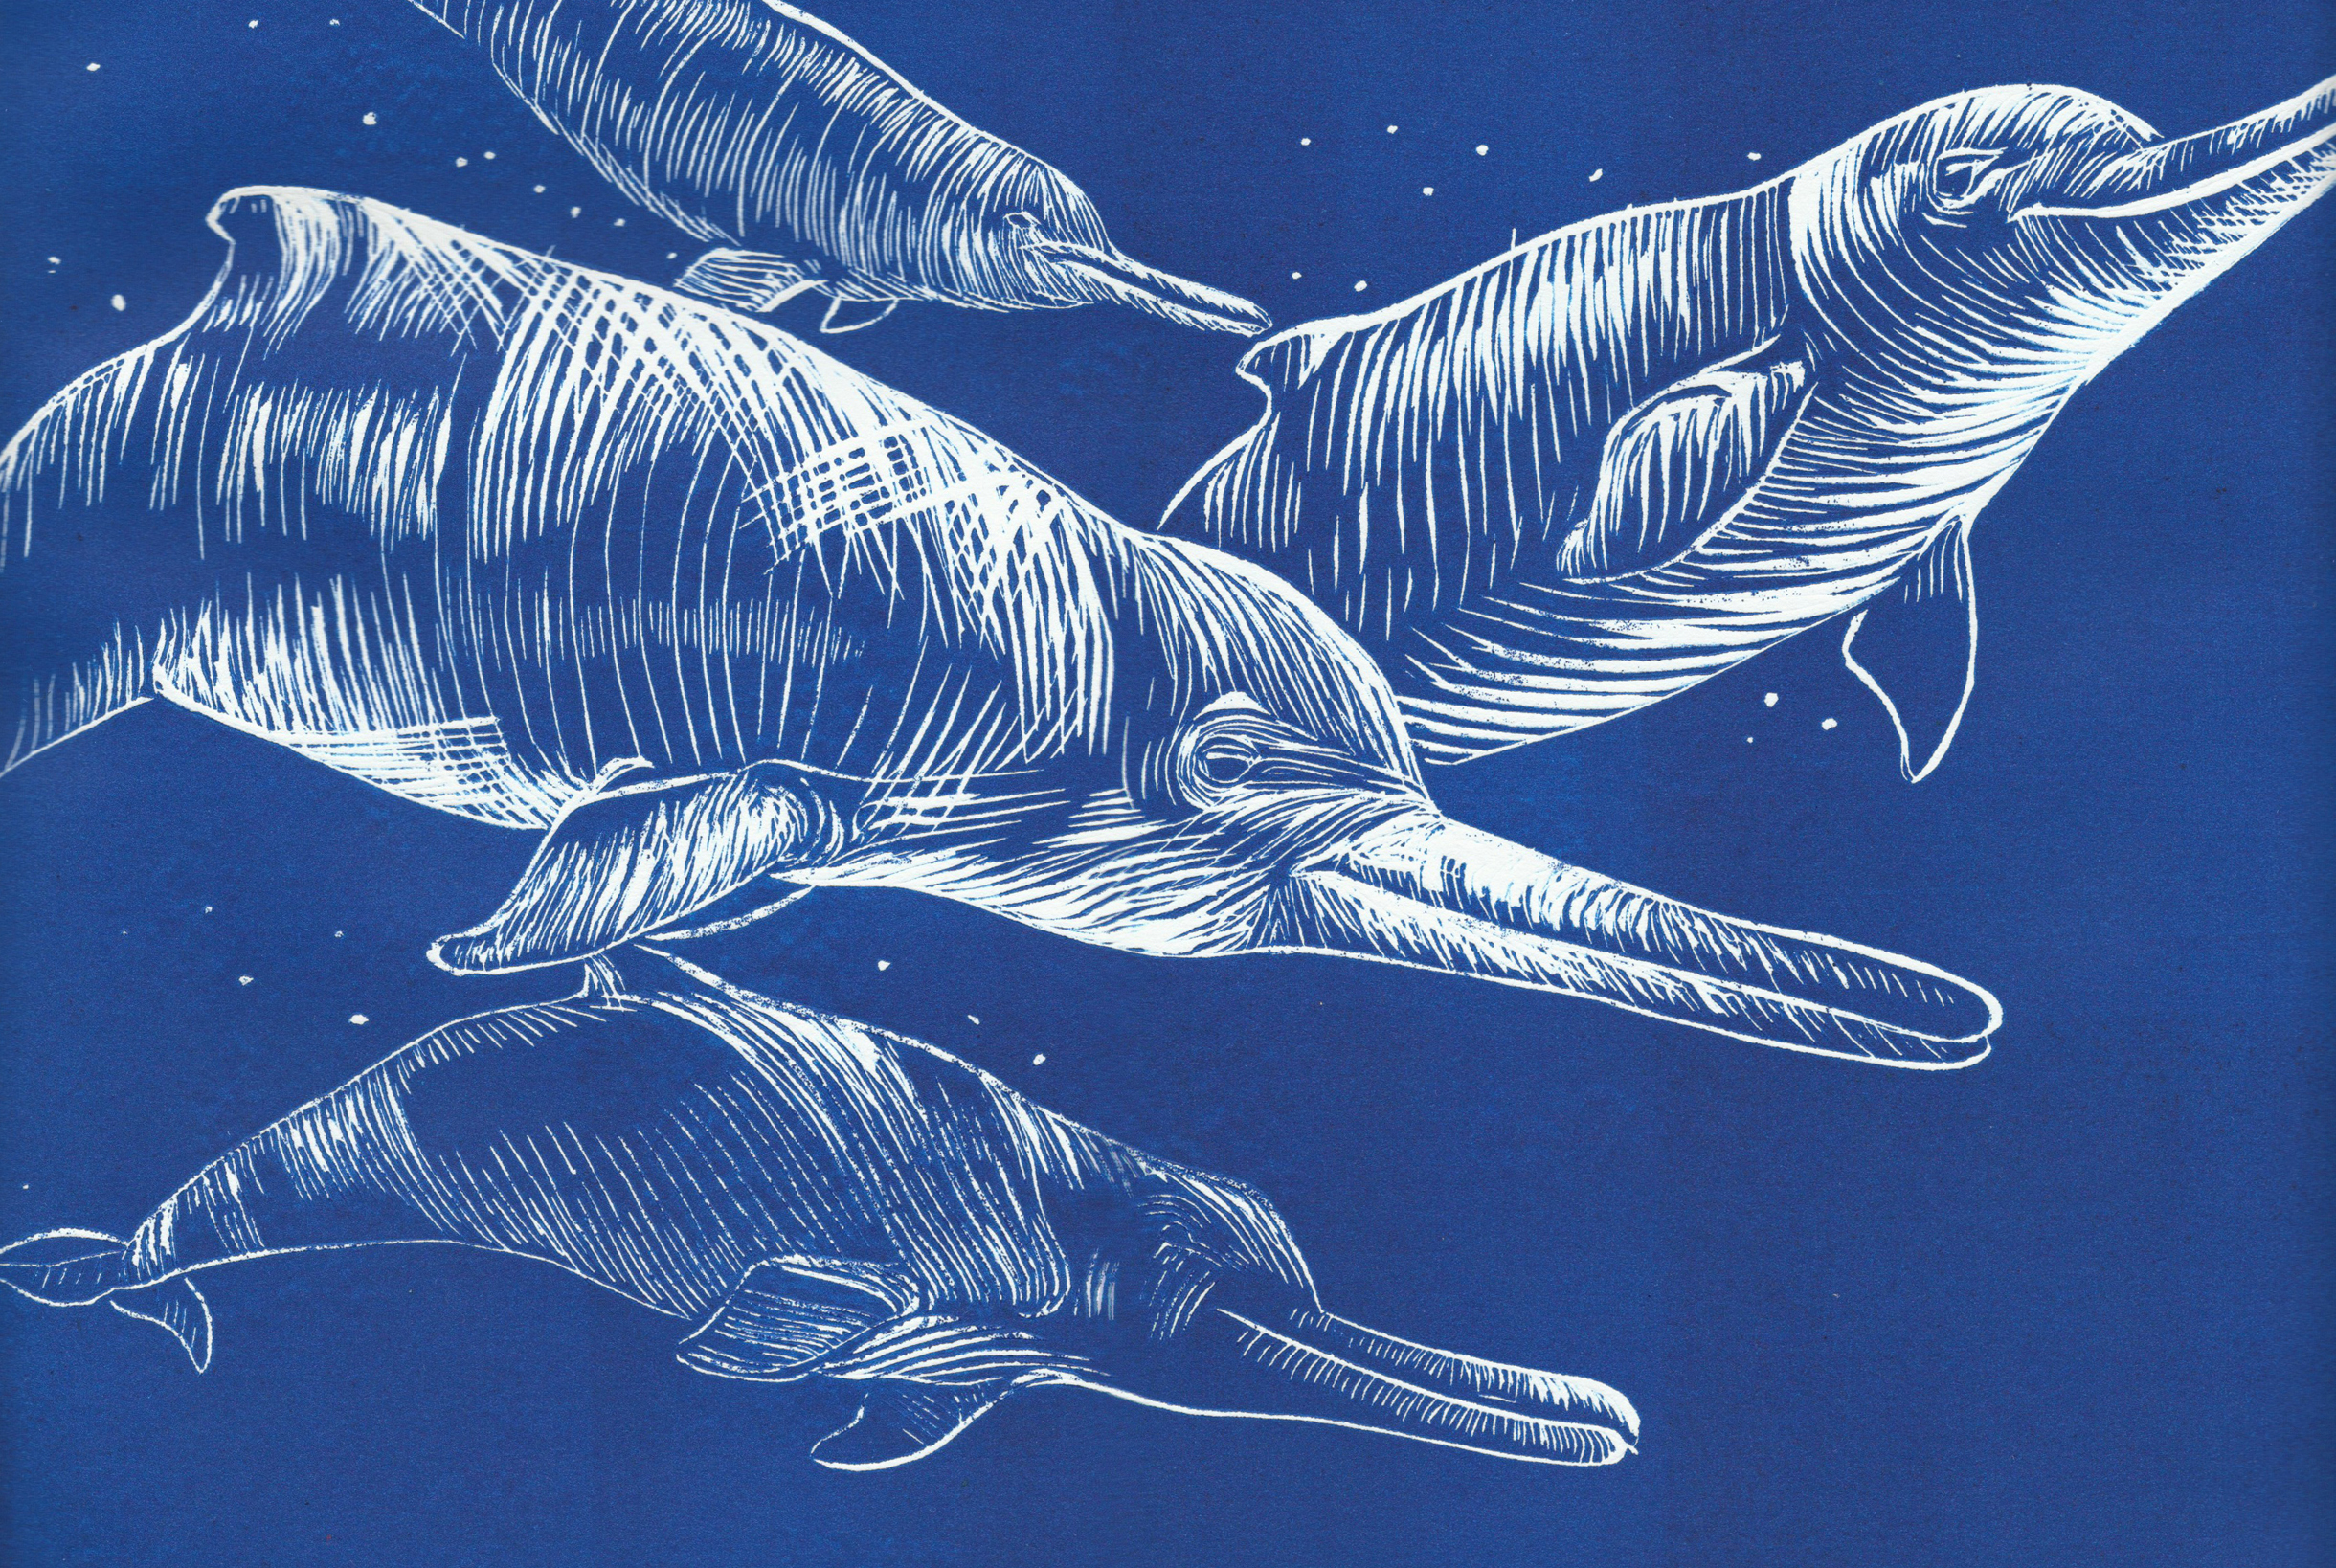 Close up of artists rendering of dolphins